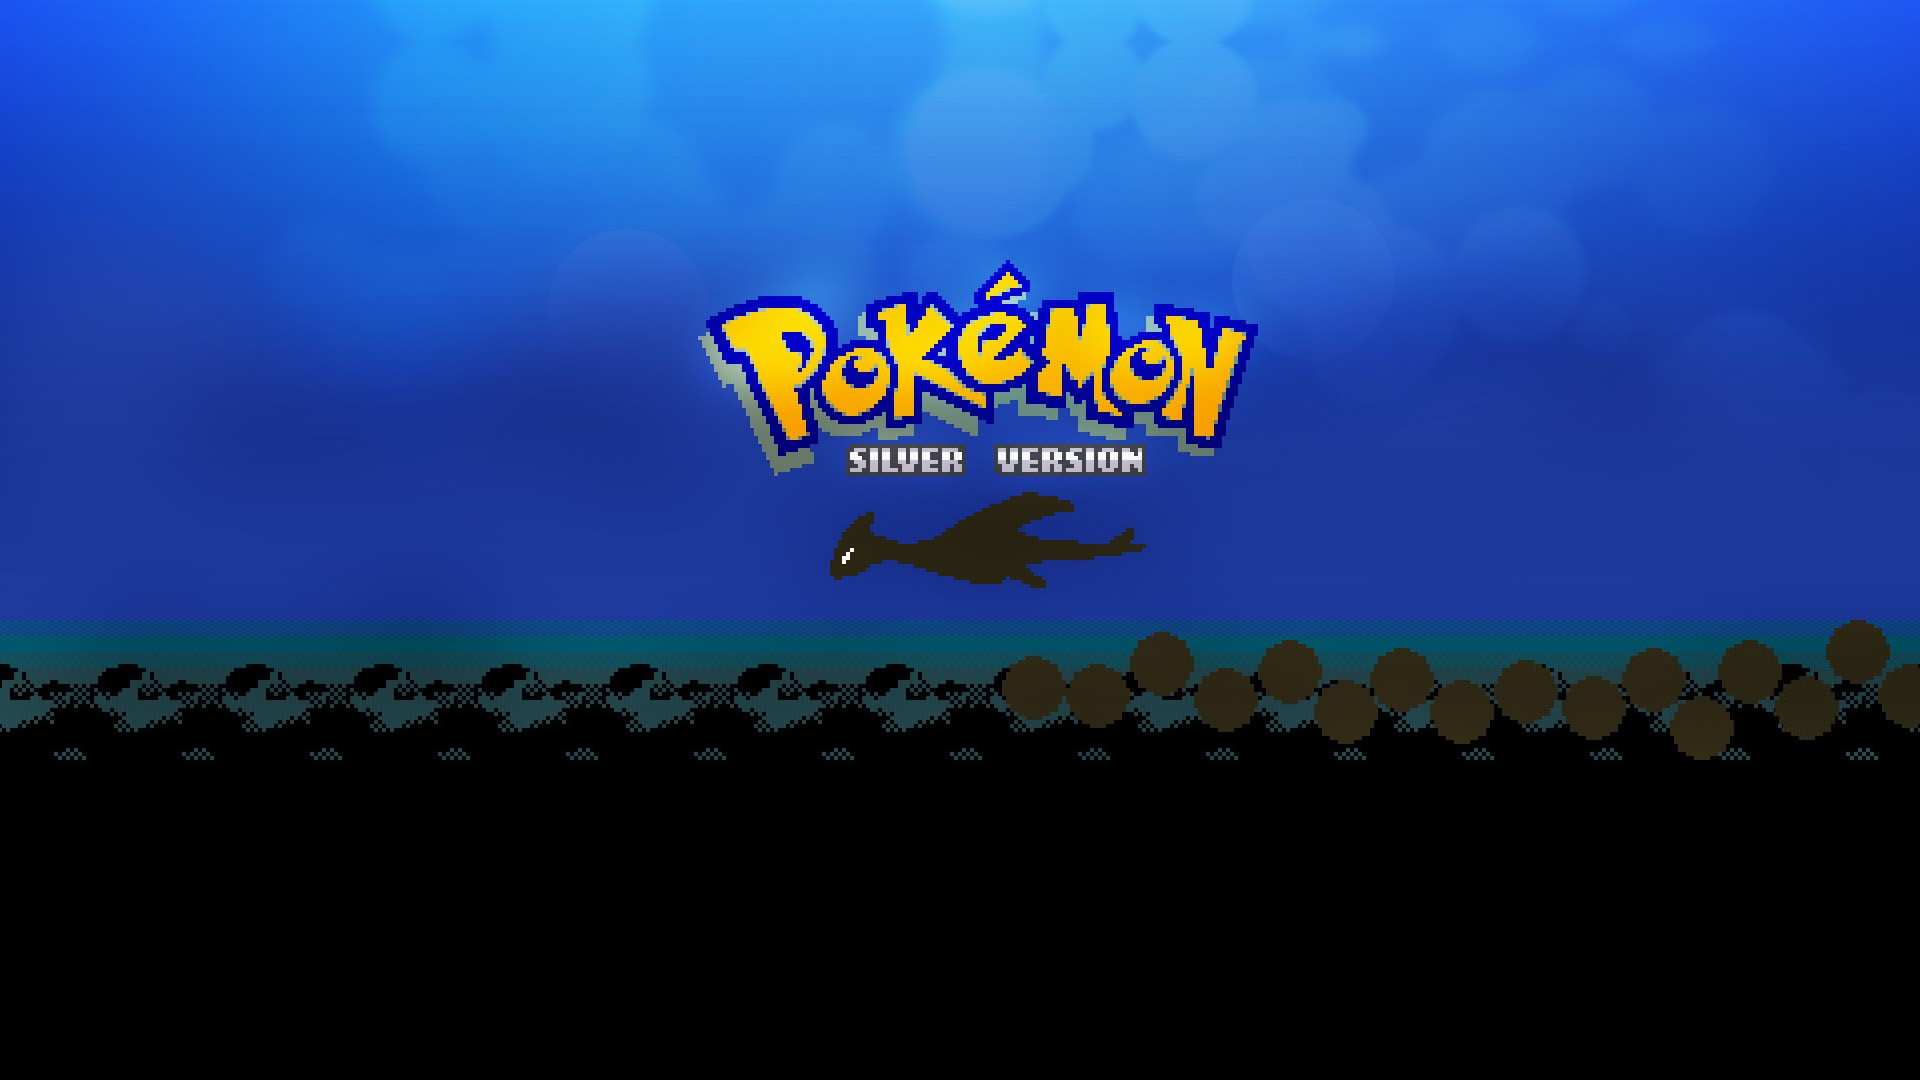 pokemon gameboy wallpaper - photo #40